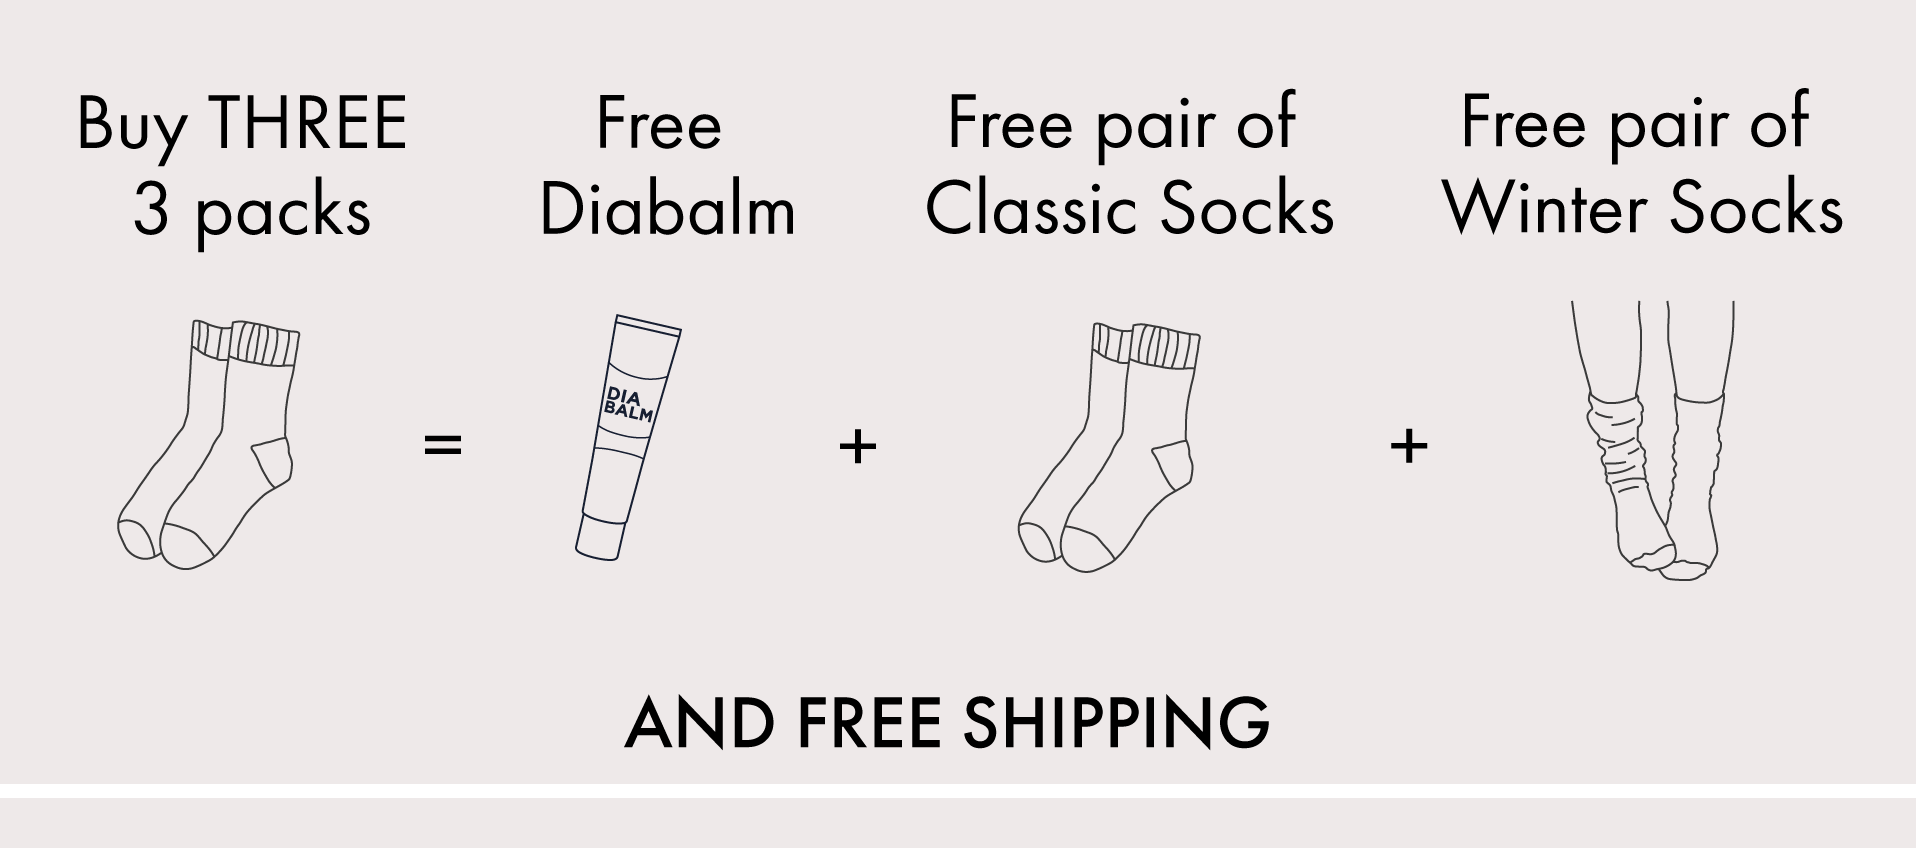 Free gifts promotion image